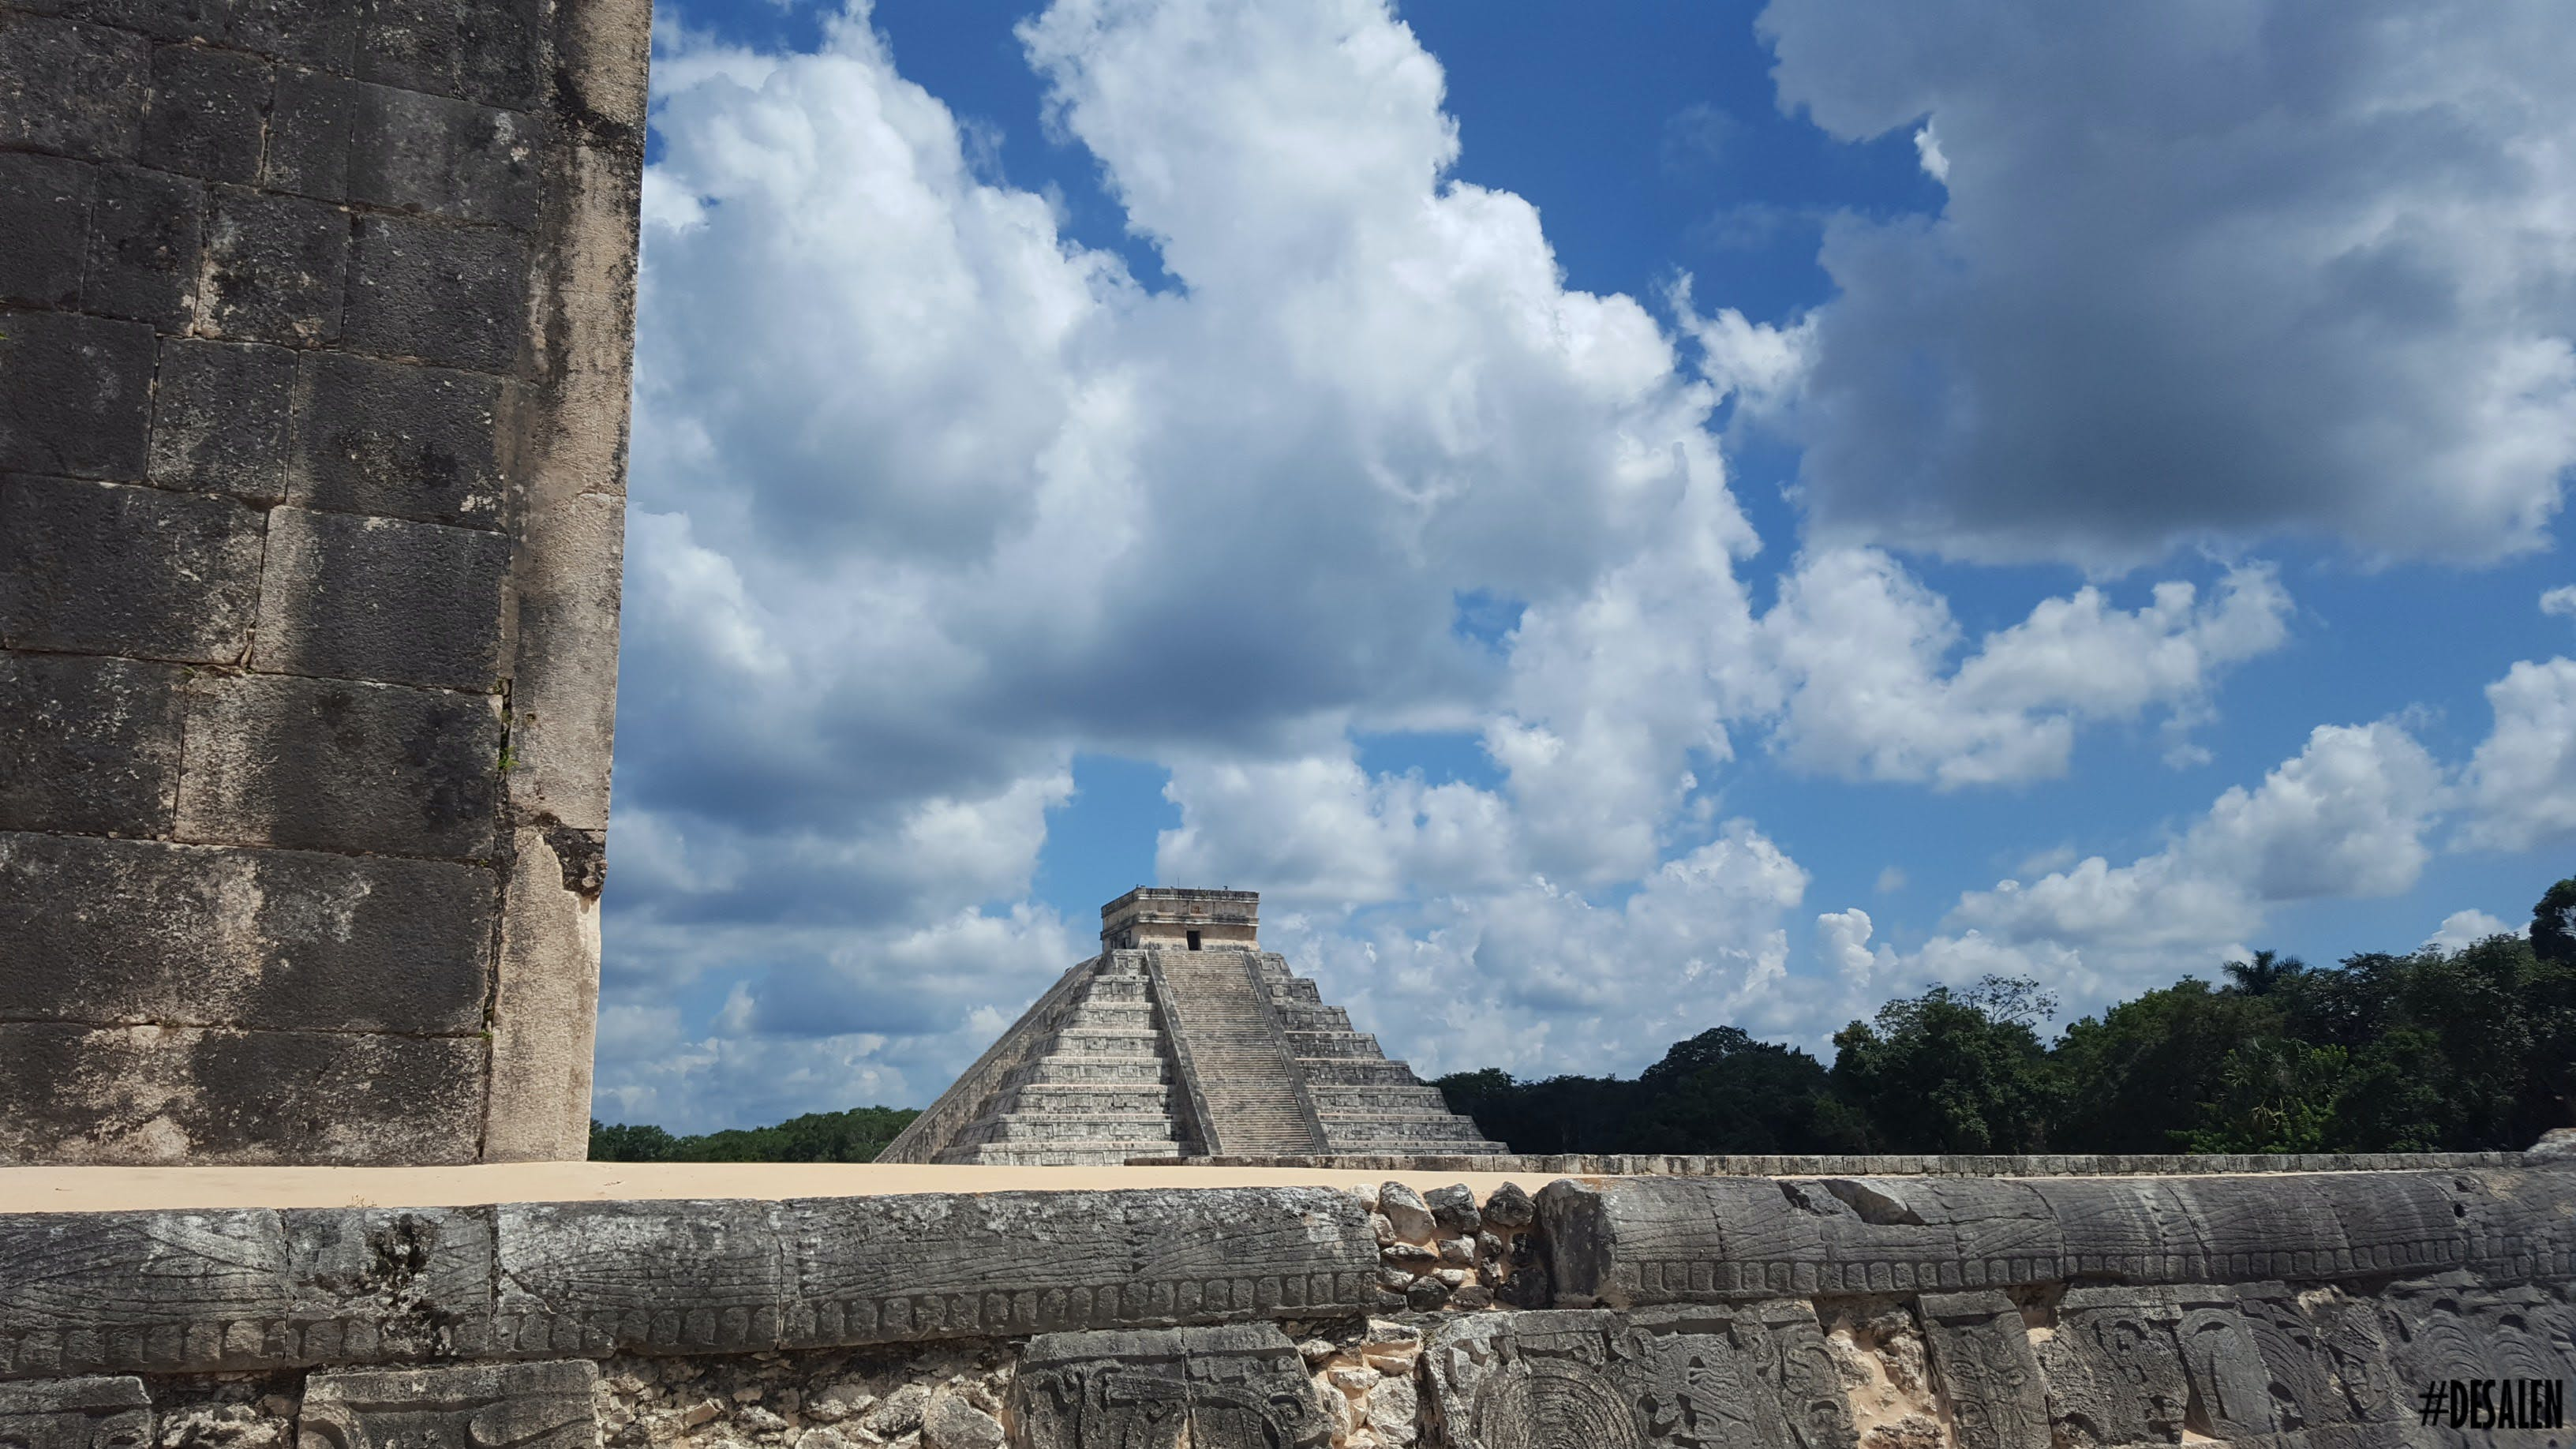 Free stock photo of anicent, blue sky, Chichén Itzá, clouds